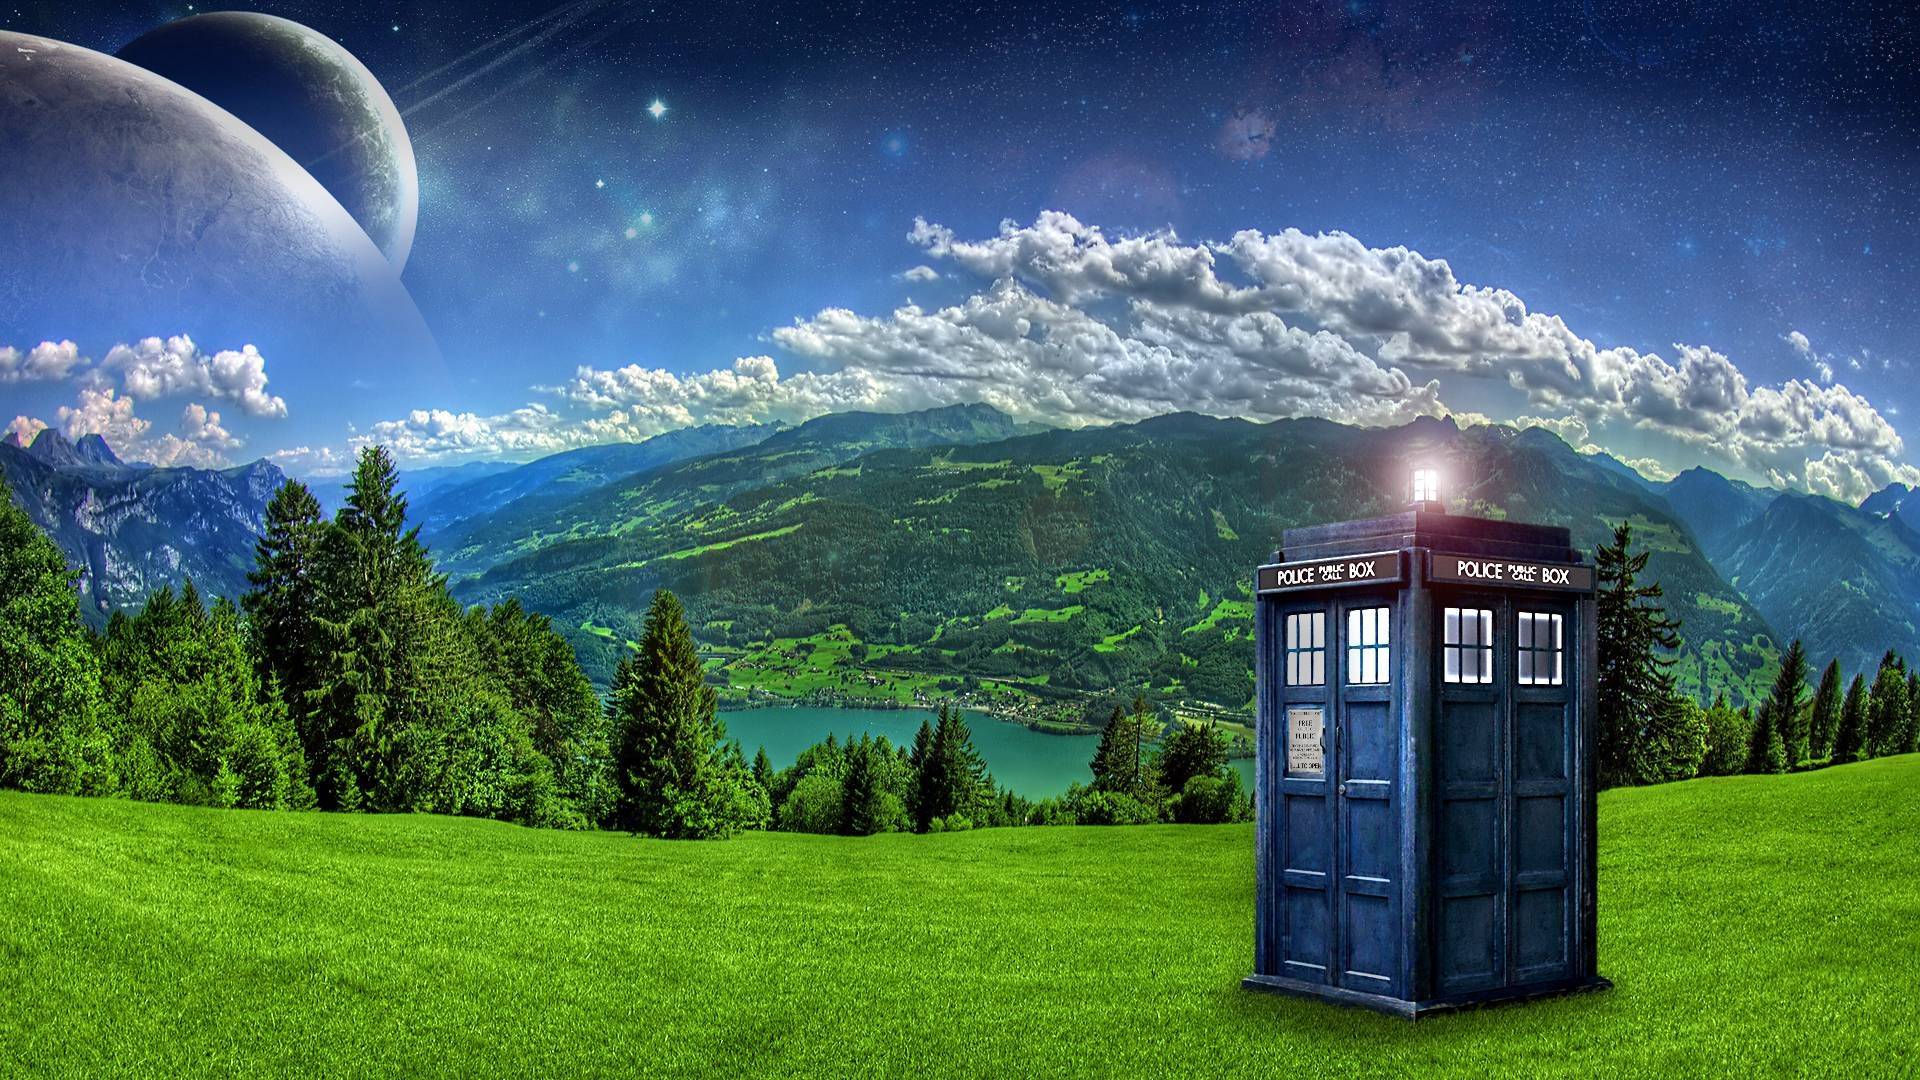 Res: 1920x1080, Wallpapers For > Tardis Wallpaper Hd